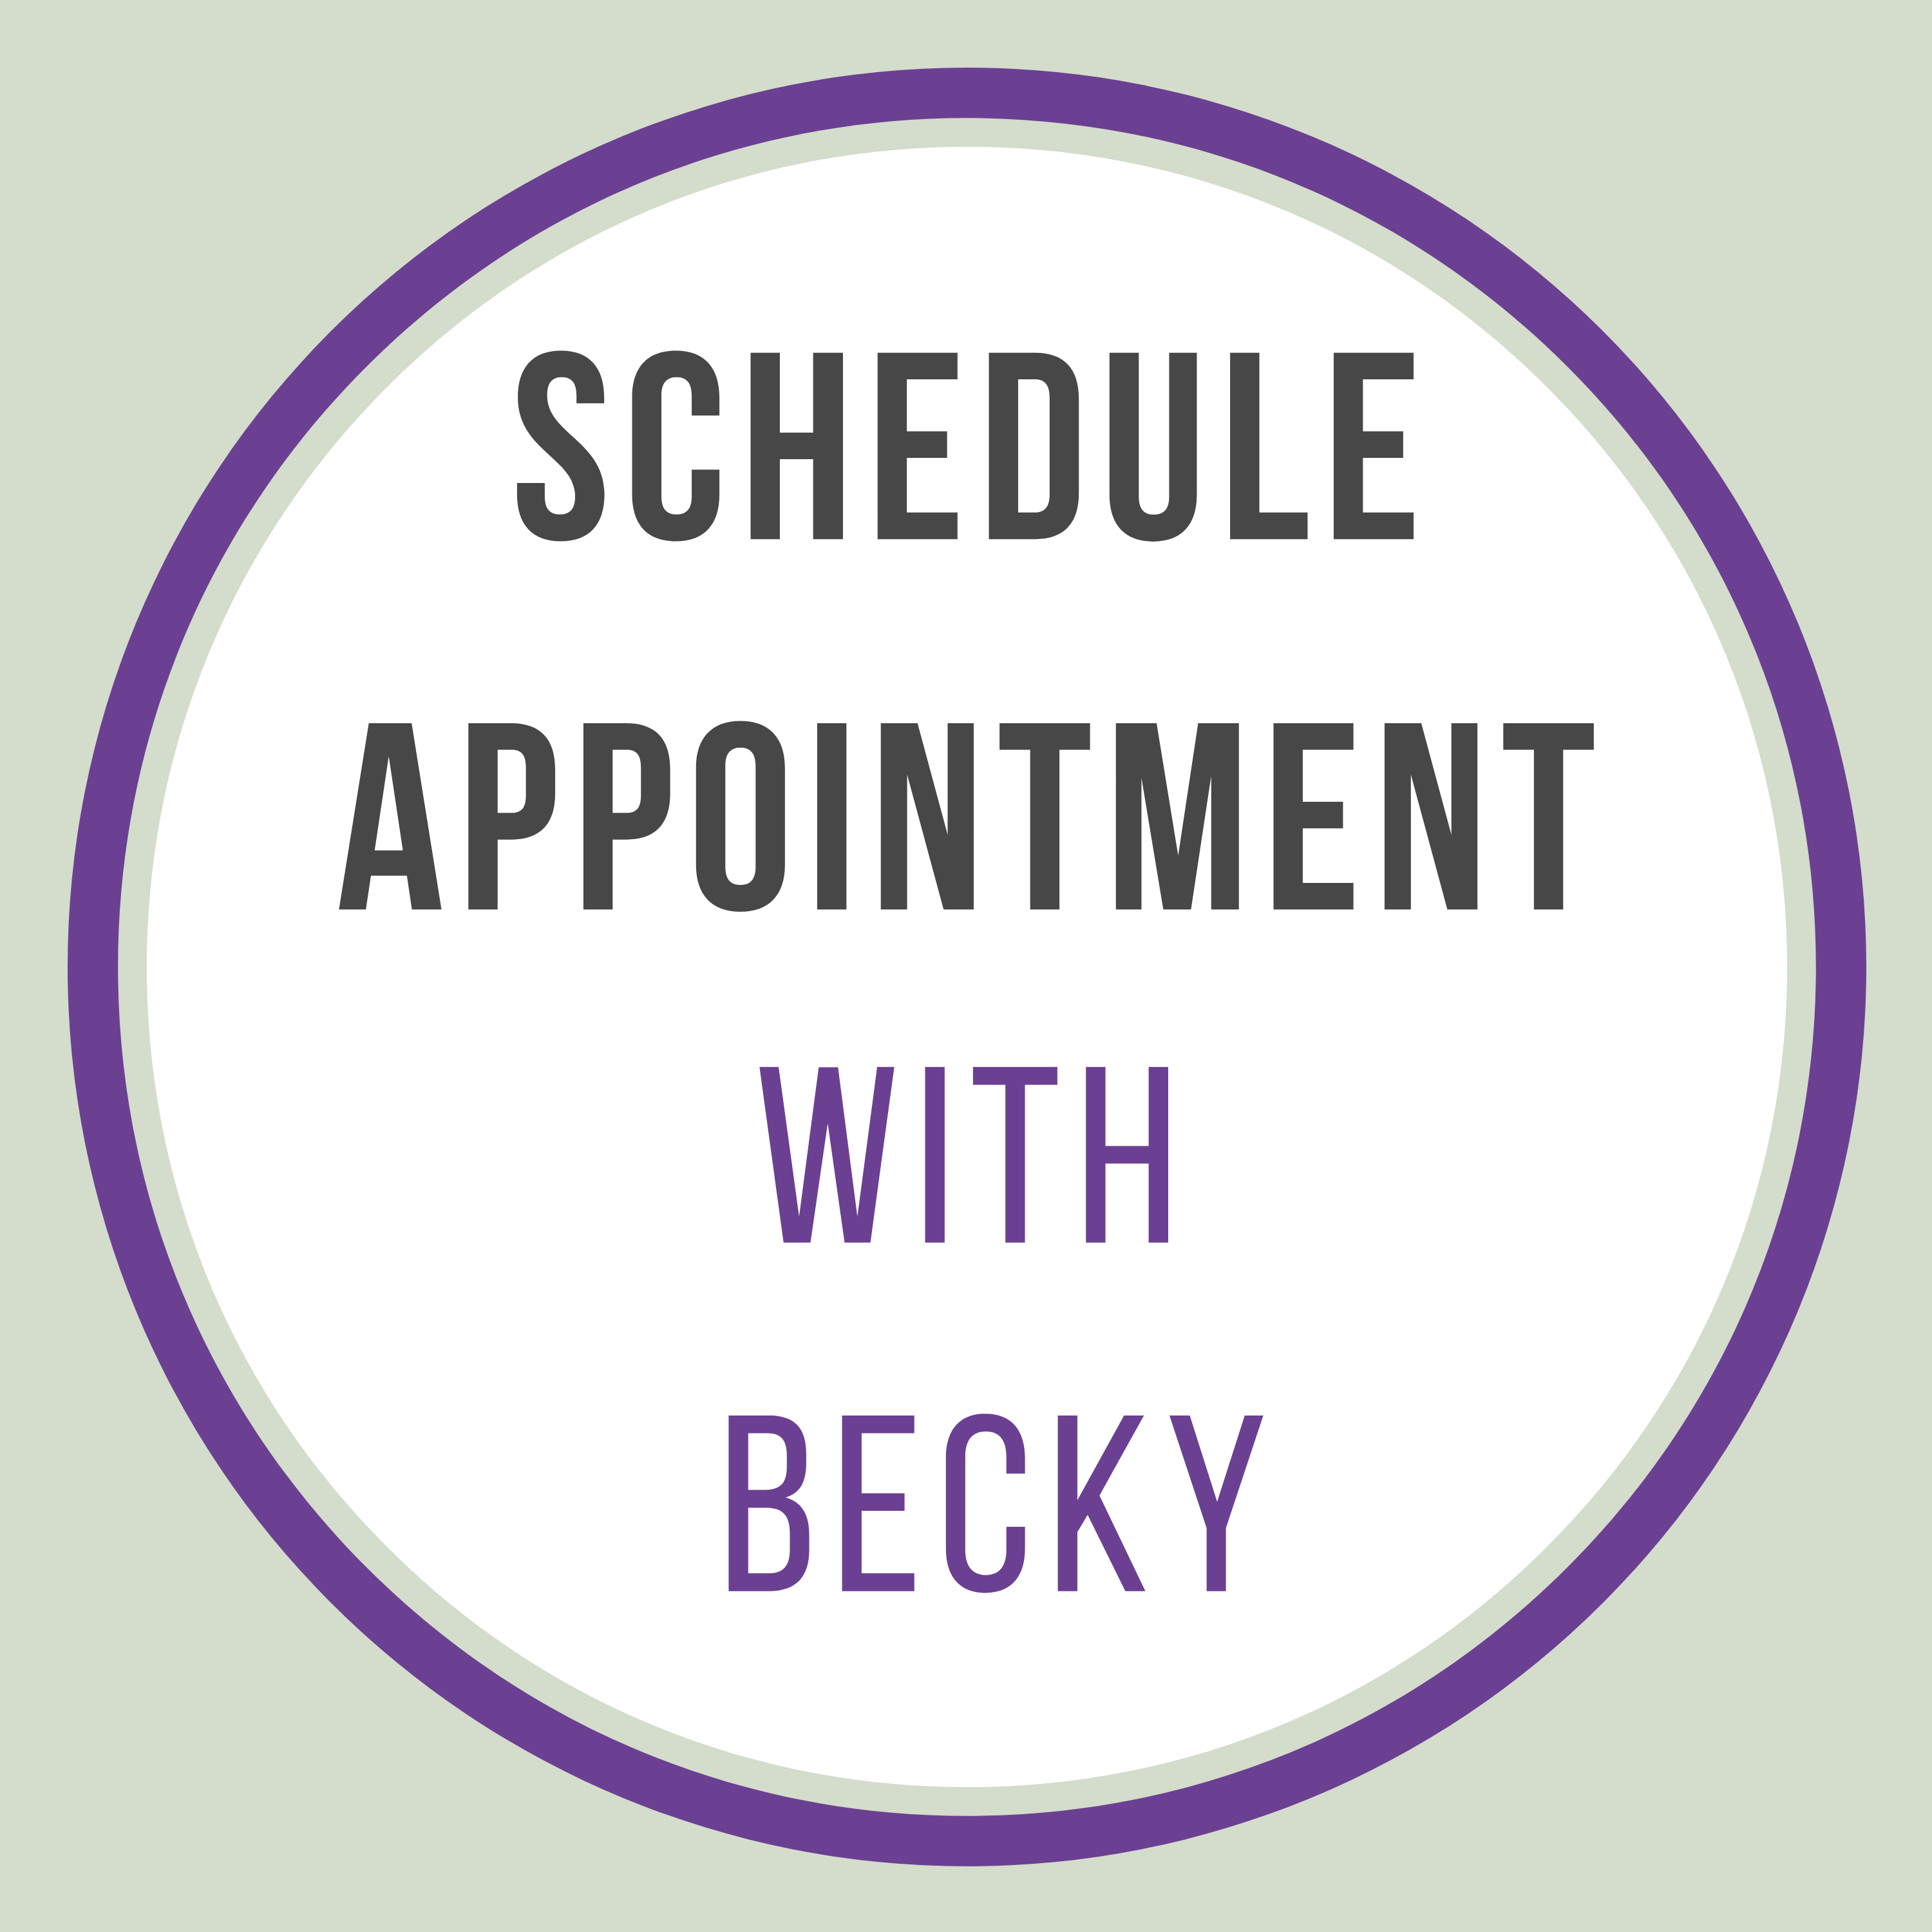 make appt with becky button-green.png